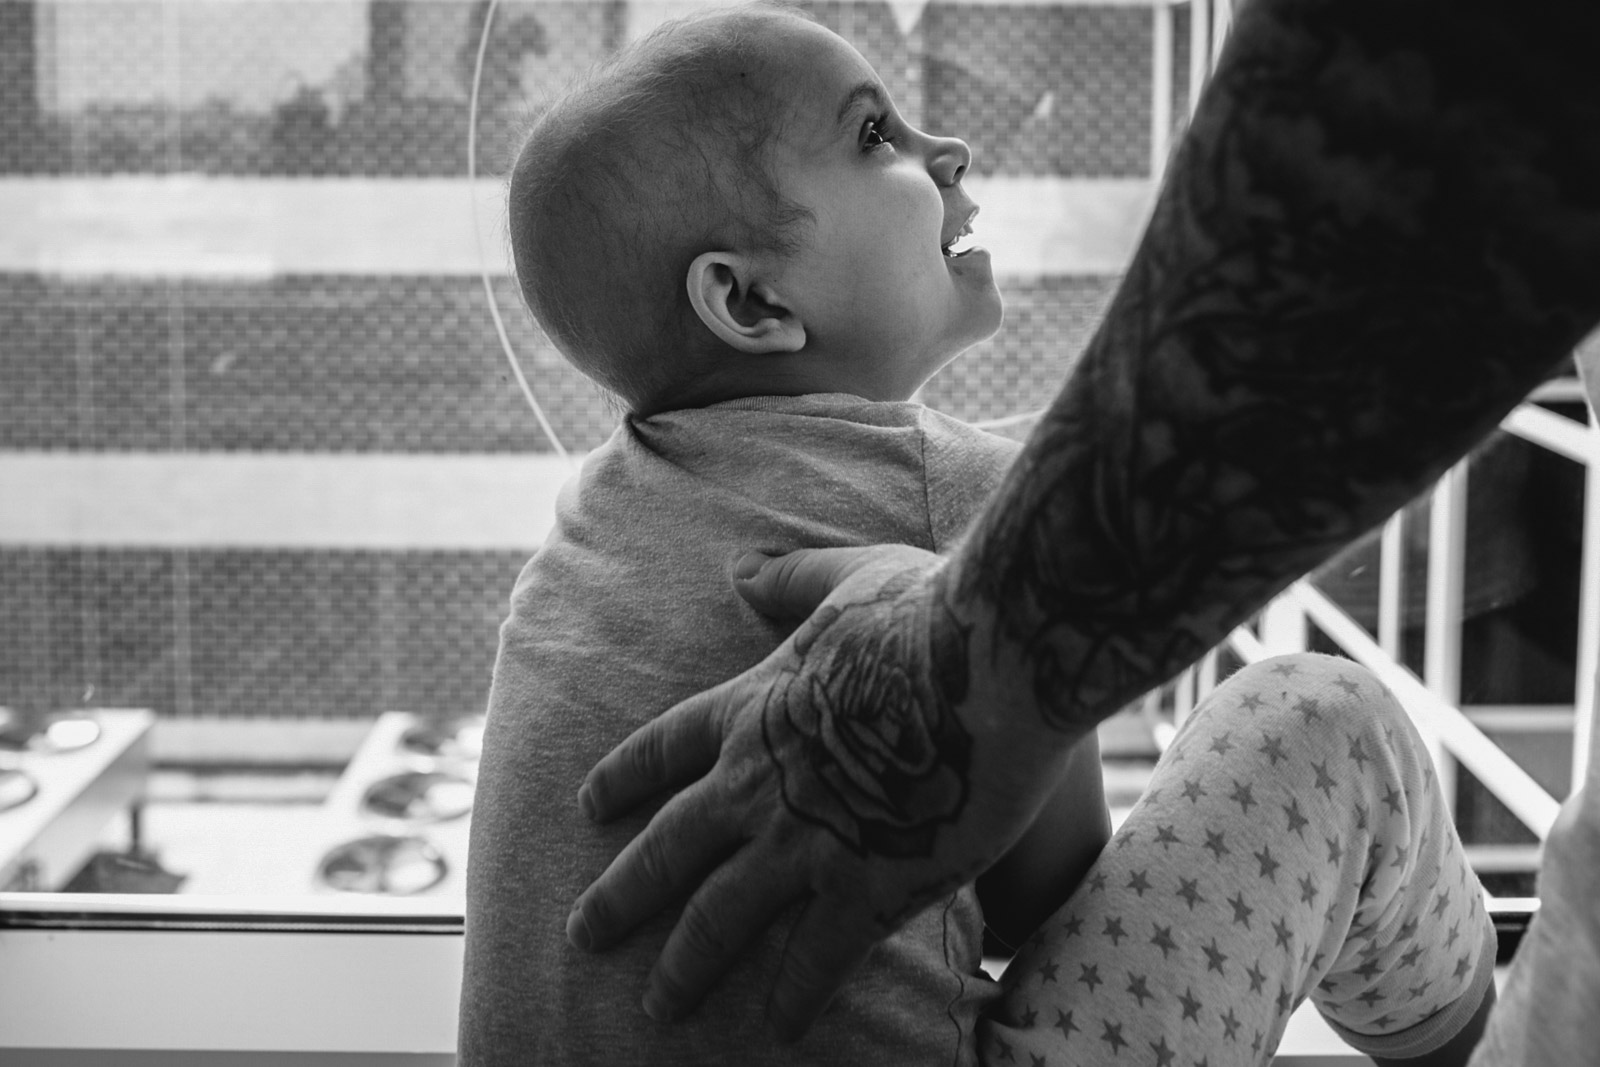 Giving through photography — photographing children with cancer